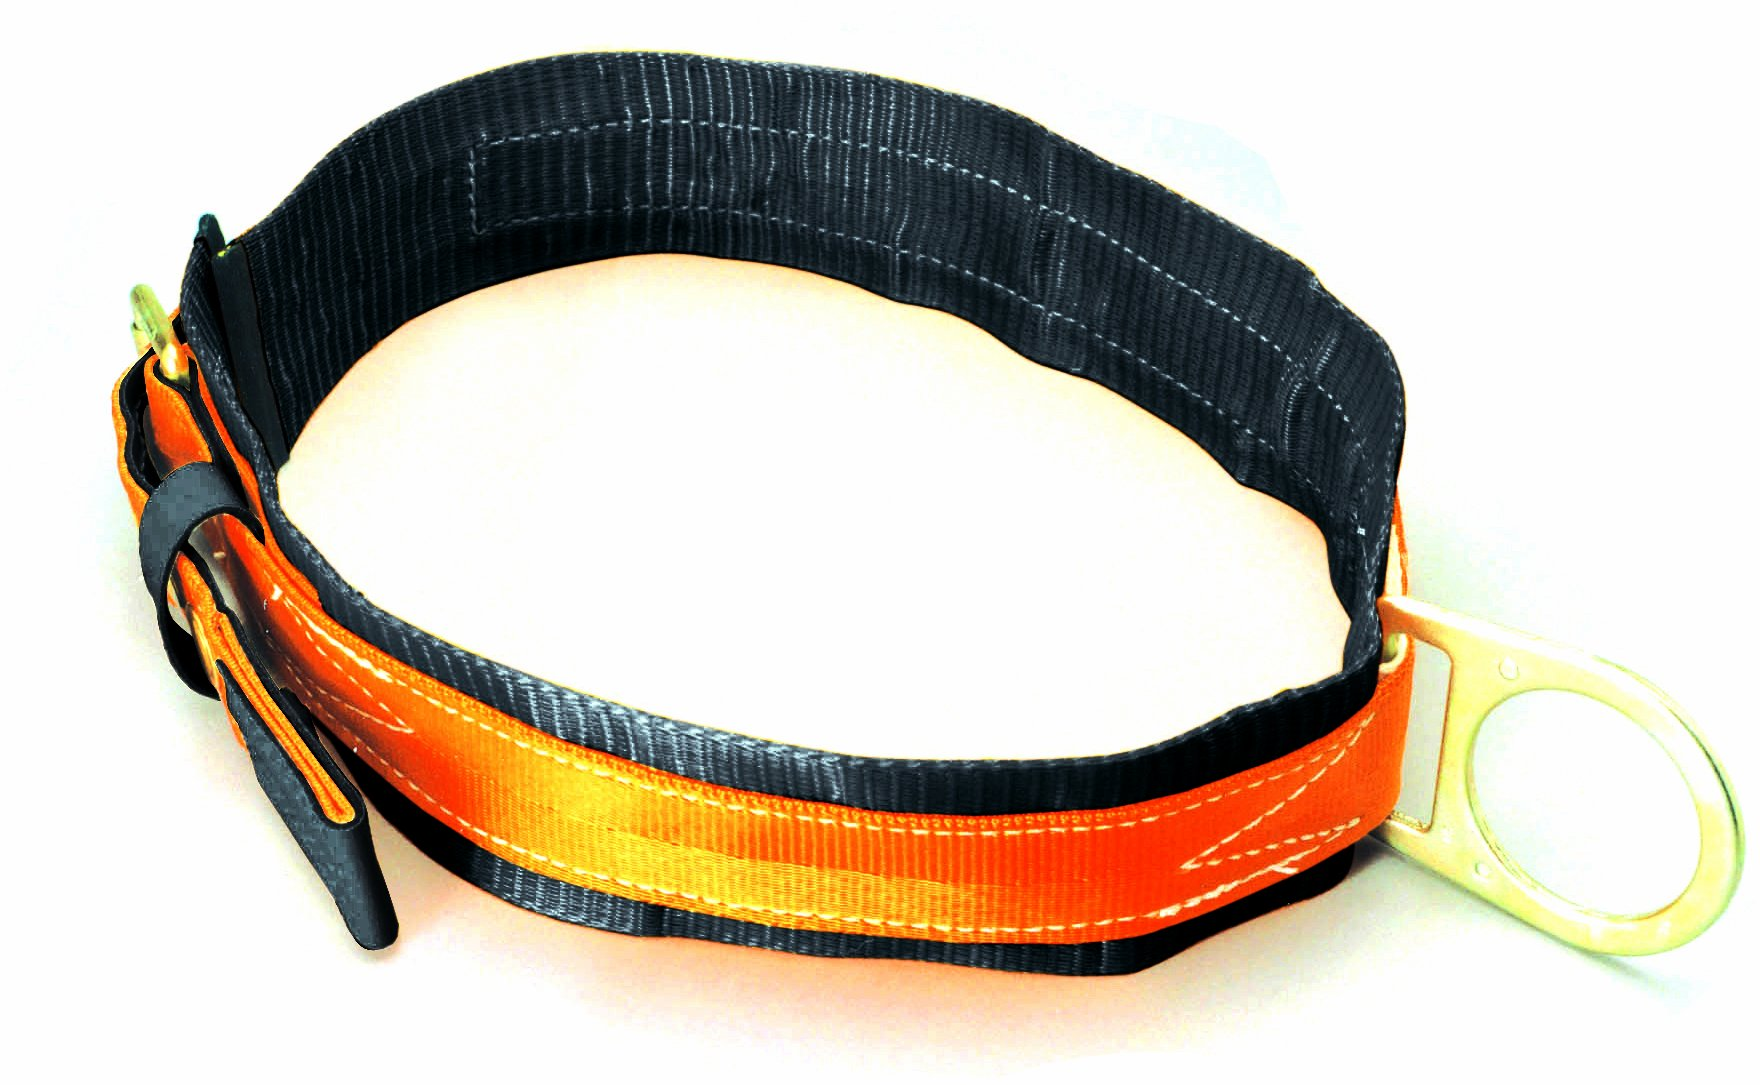 Miller Titan by Honeywell T3310/MAF Tongue Buckle Body Belt with Single D-Ring and 3-Inch Back Pad, Medium by Honeywell (Image #1)